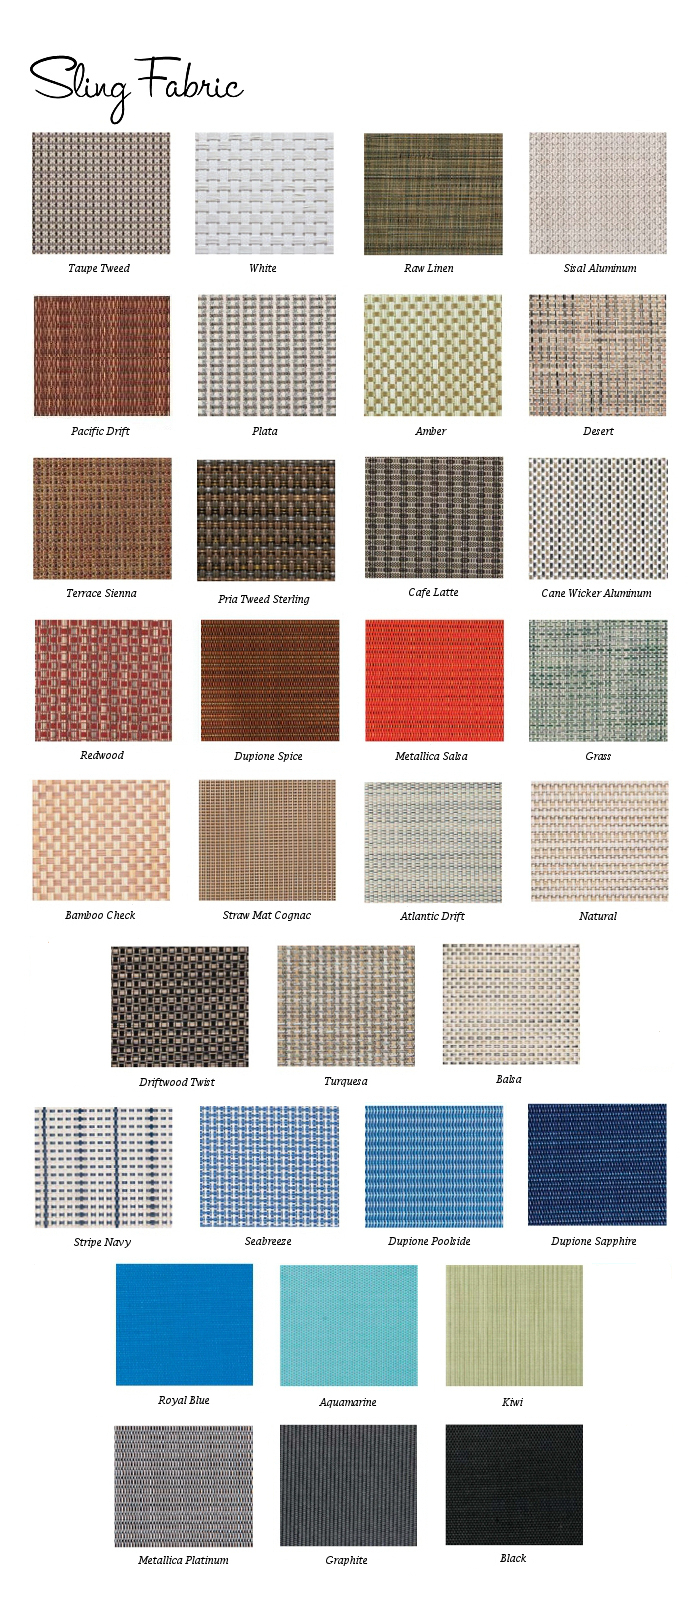 Sling Fabric Colors